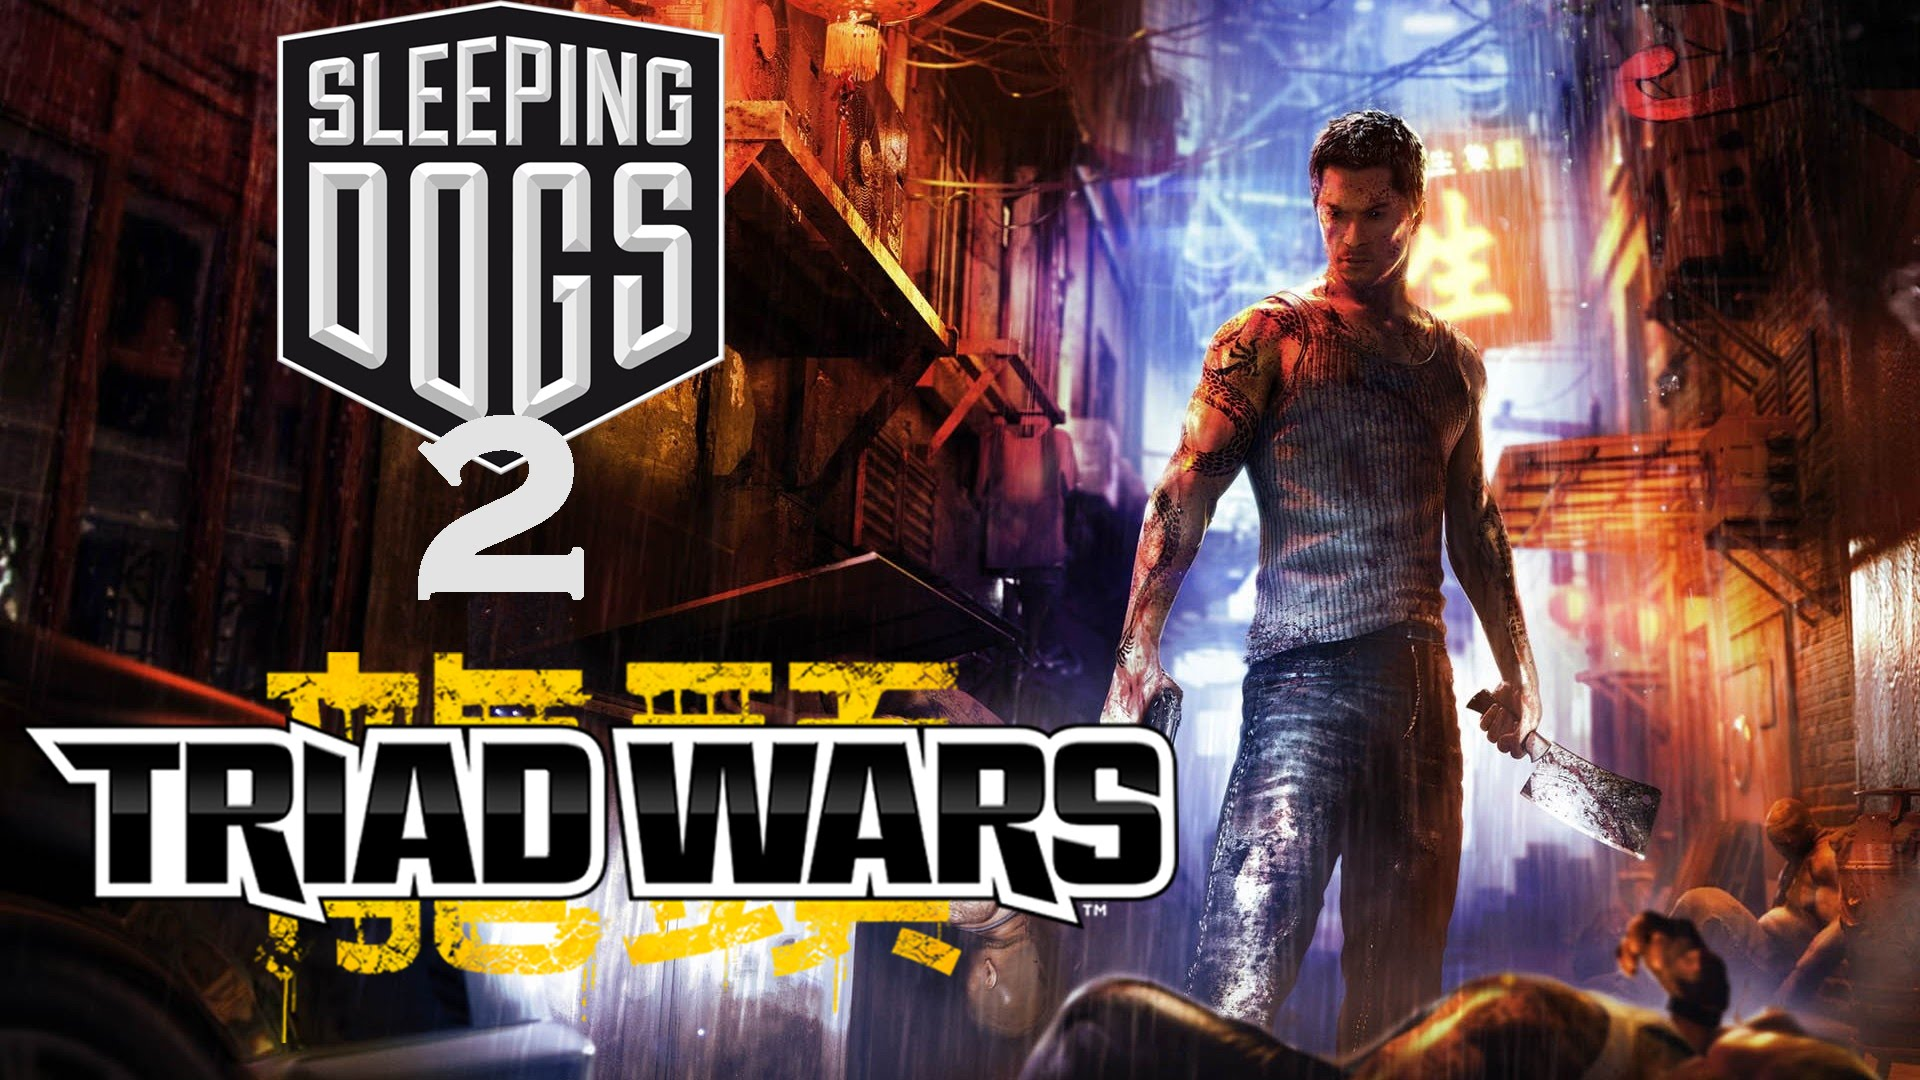 Triad Wars Sleeping Dogs United Front Games